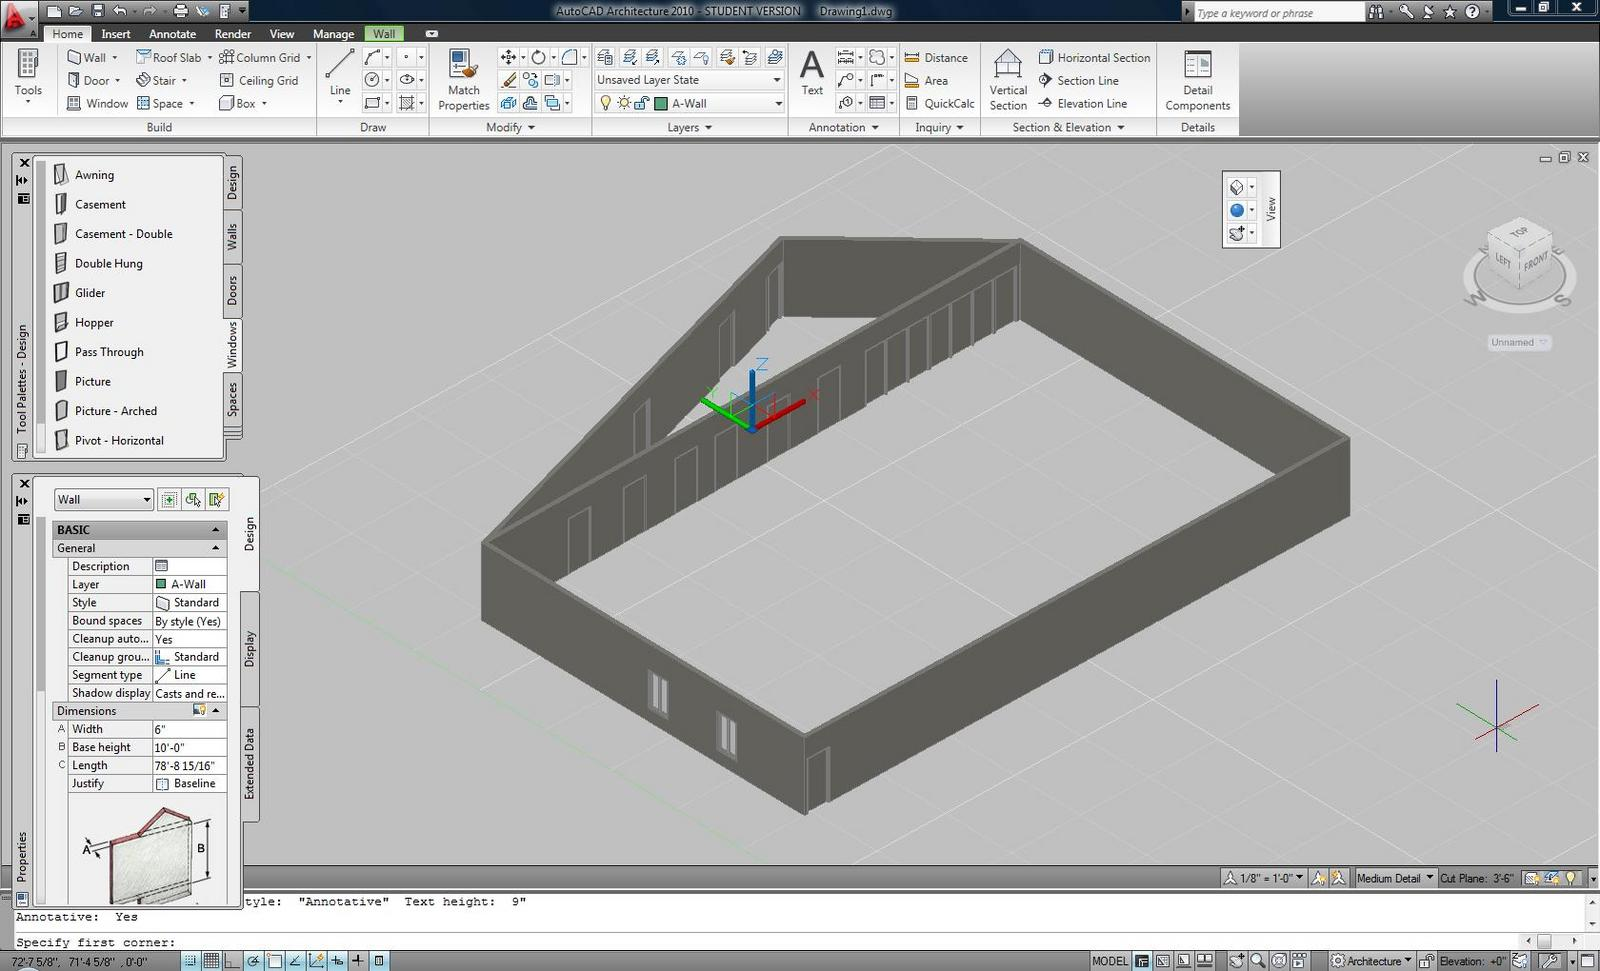 autocad architecture 2010 32 bit free download